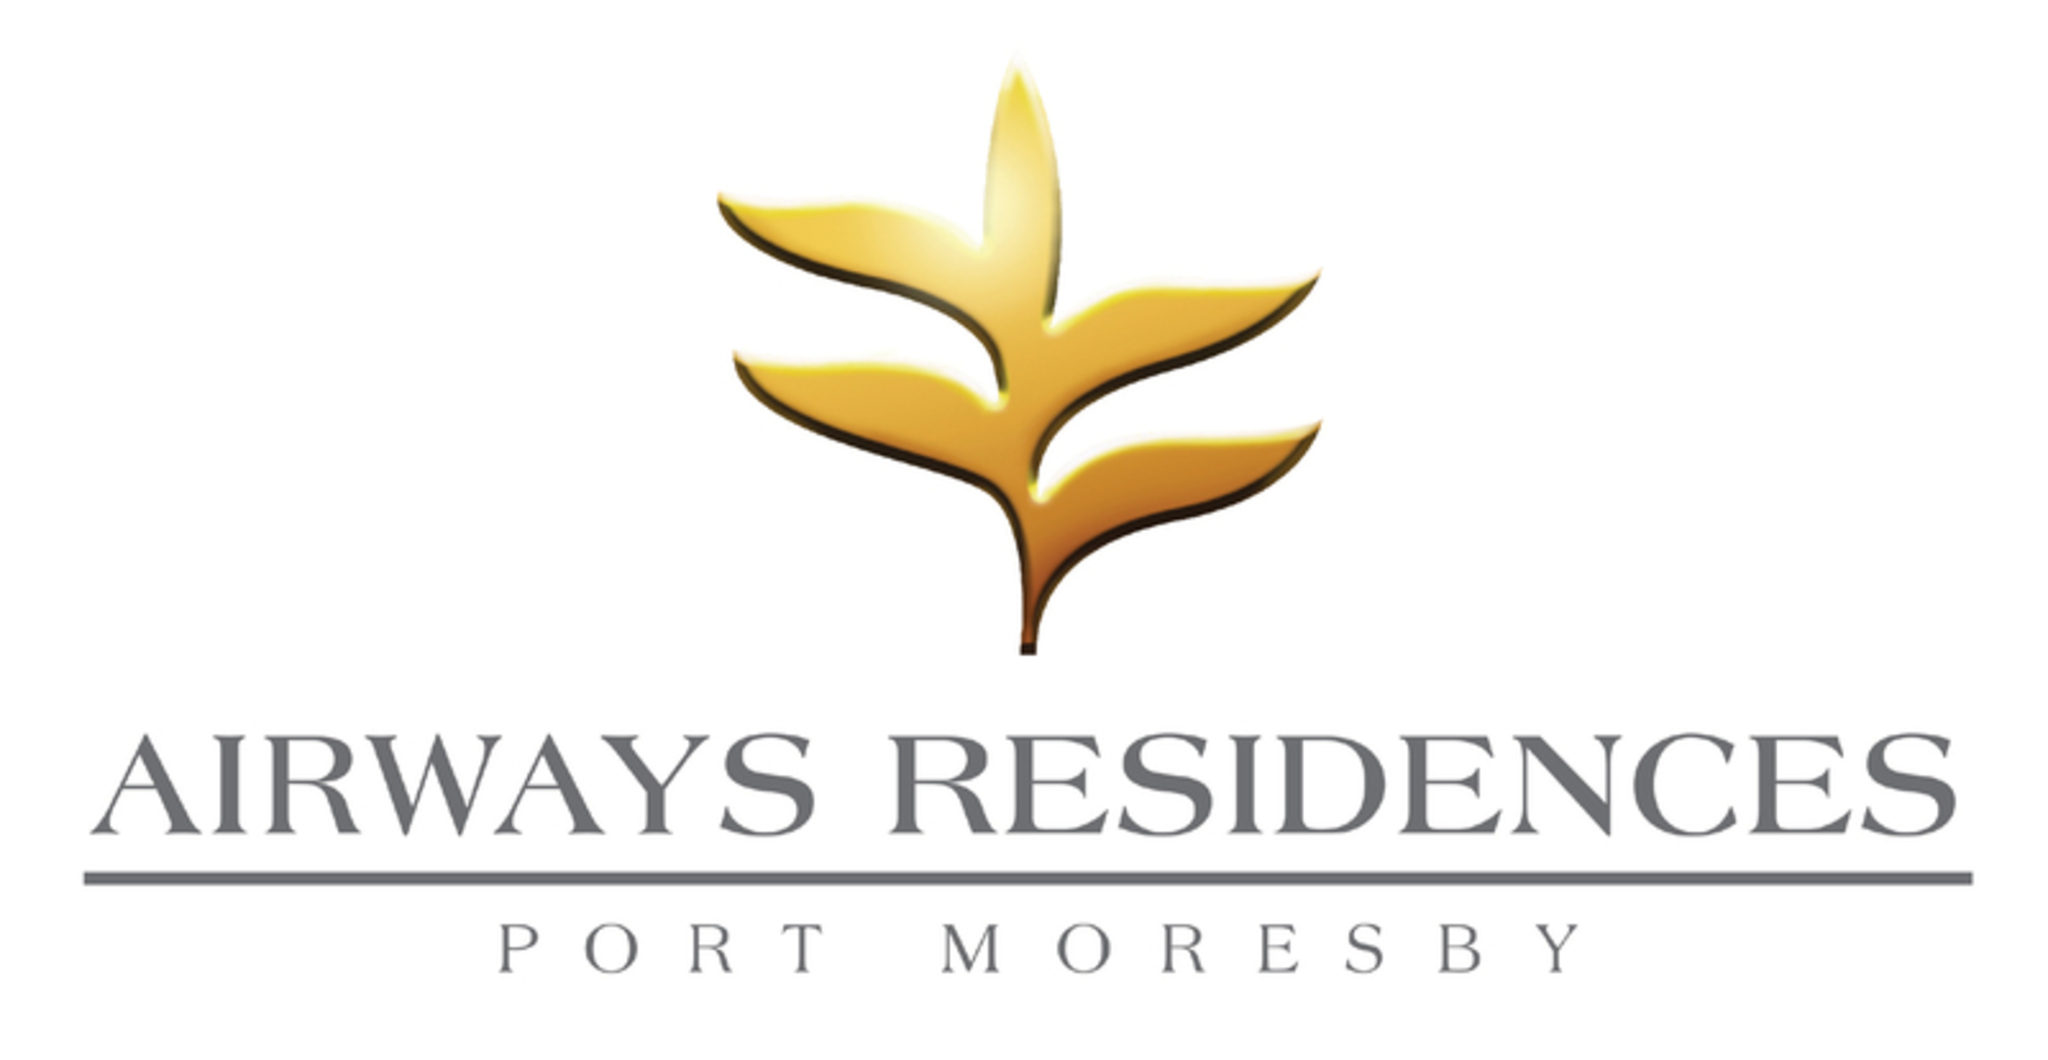 Airways Residences